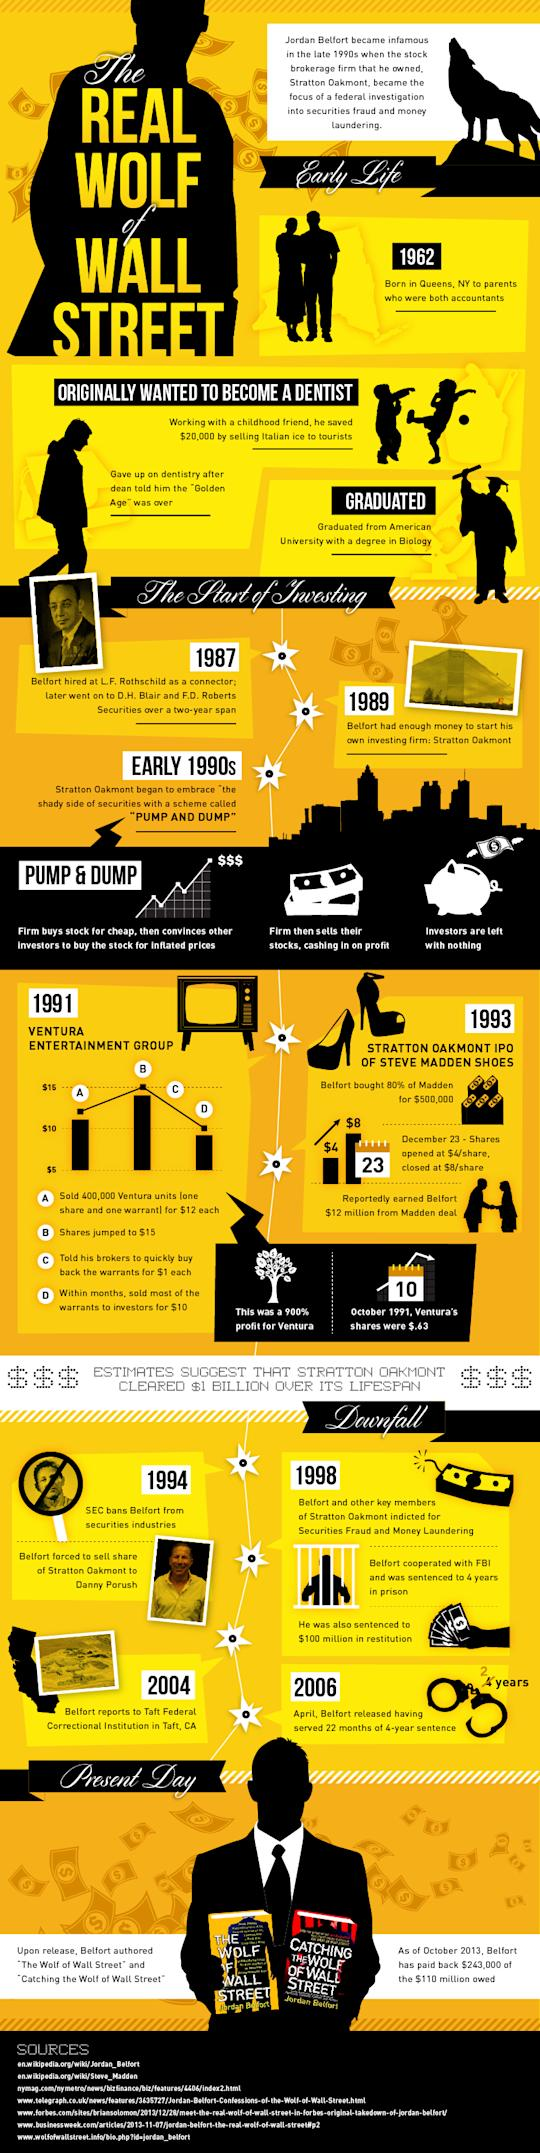 The Real Wolf of Wall Street image the real wolf on wall street infographic4